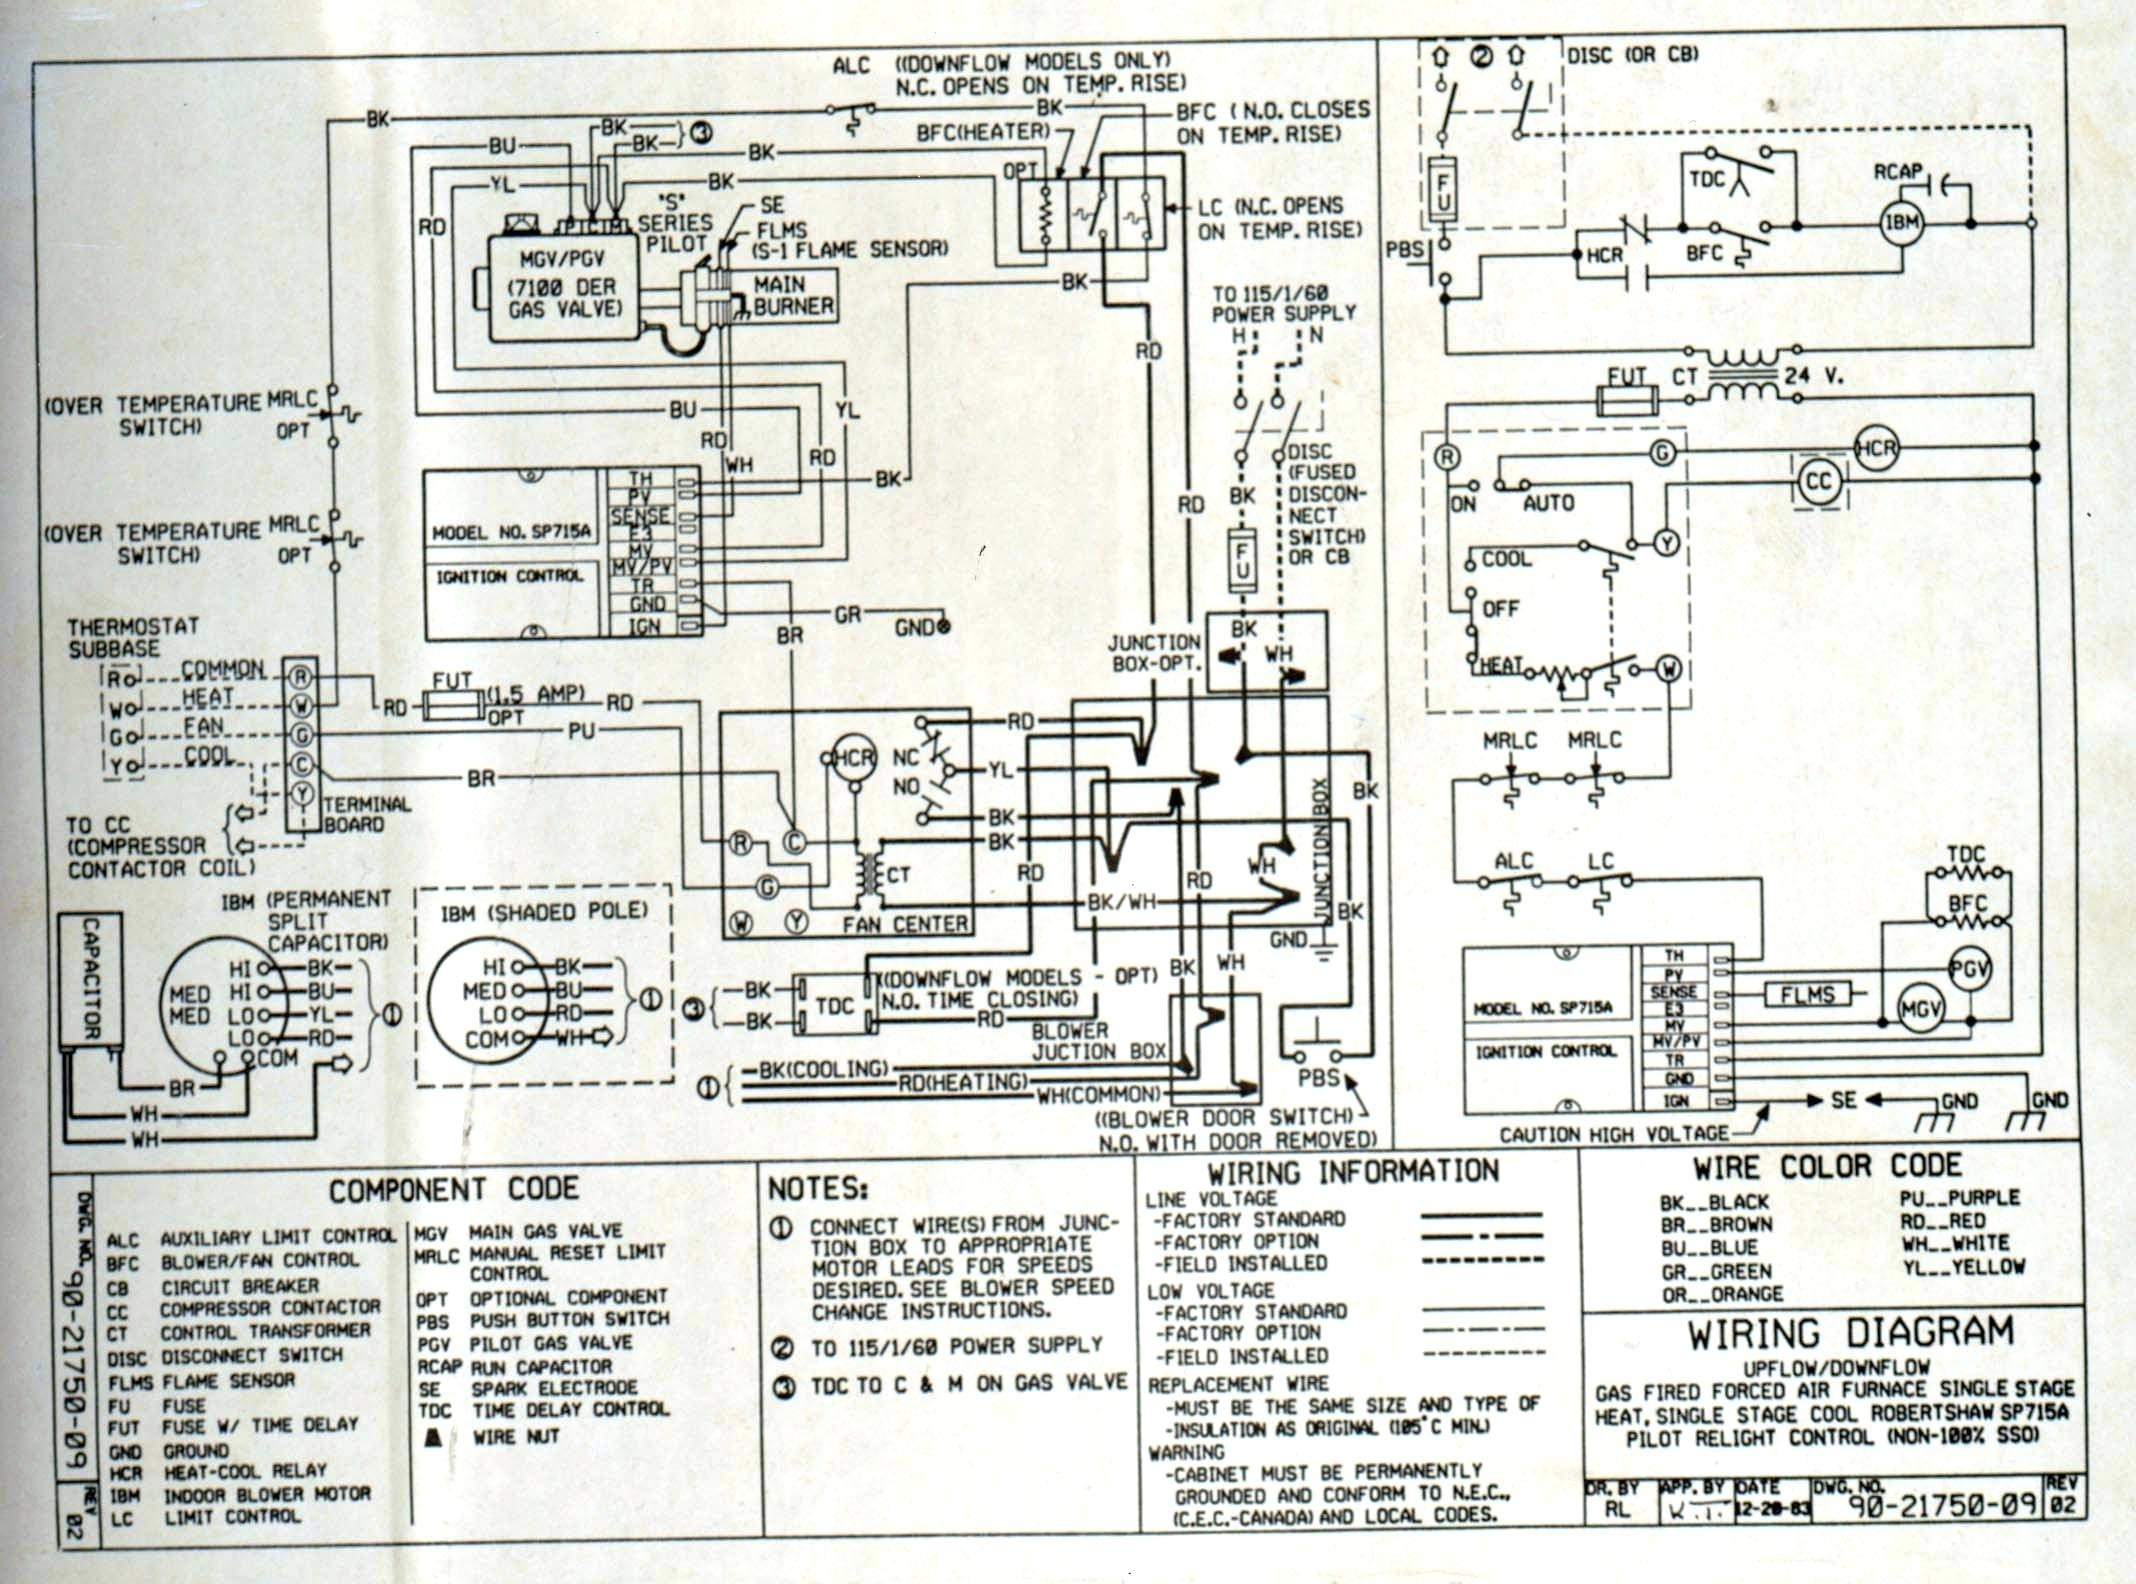 miller electric furnace wiring diagram Download-Wiring Diagram for Miller Electric Furnace Inspirationa Manufactured Home Wiring Diagrams Fresh Miller Furnace Wiring 20-o